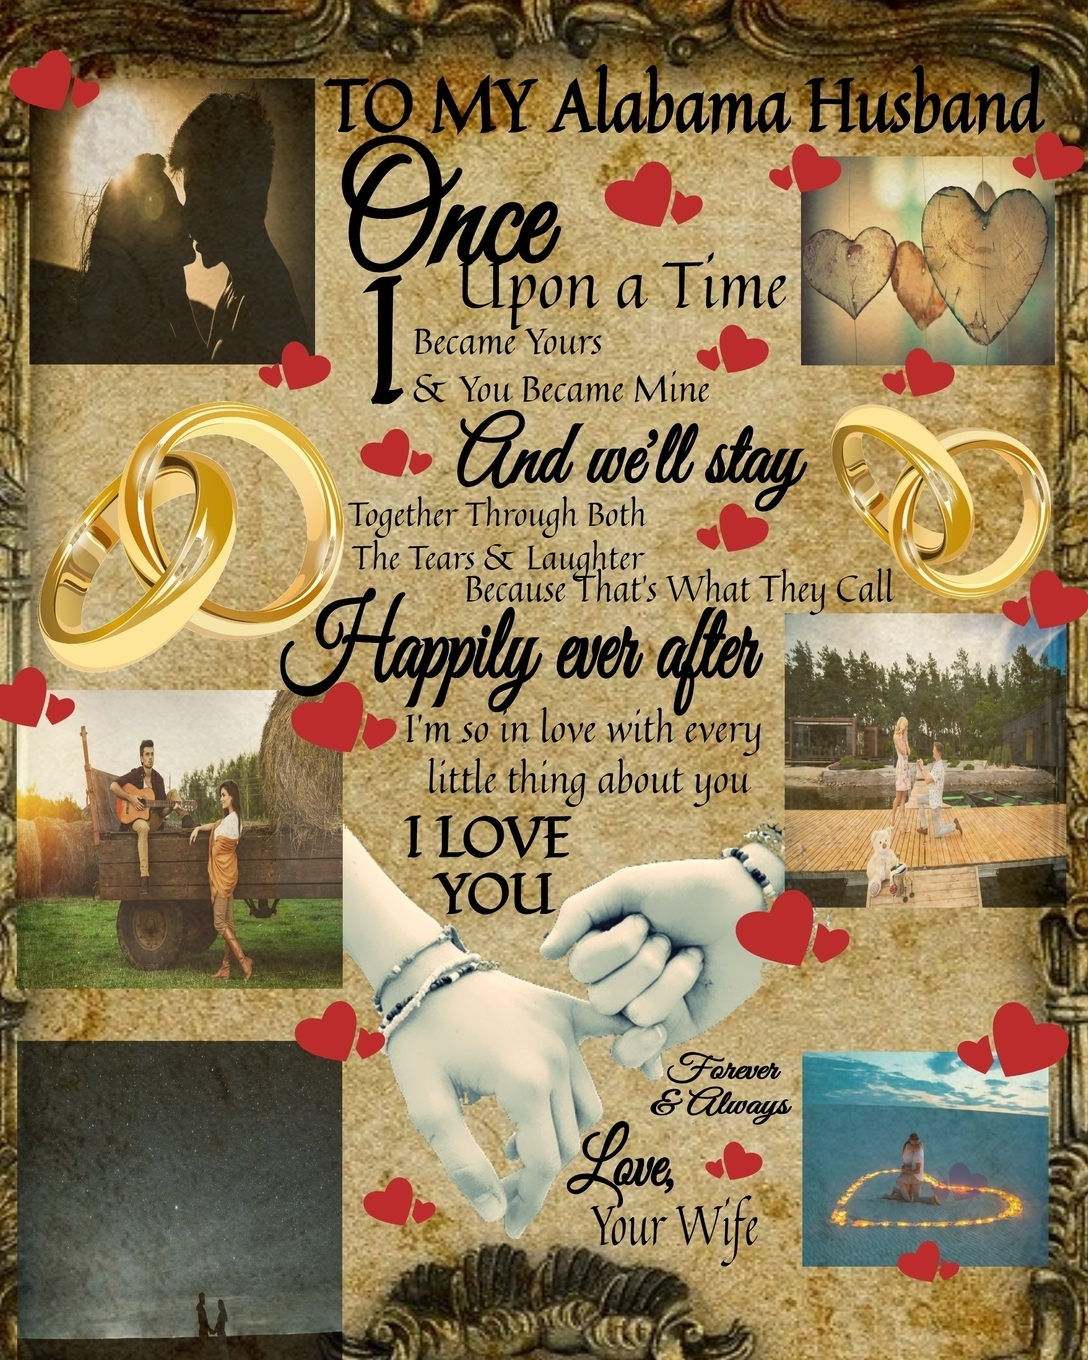 Scarlette Heart. To My Alabama Husband Once Upon A Time I Became Yours & You Became Mine And We'll Stay Together Through Both The Tears & Laughter. 20th Anniversary Gifts For Husband - Once Upon A Time Journal - Paperback Black Lined Composition Notebook & Journal...